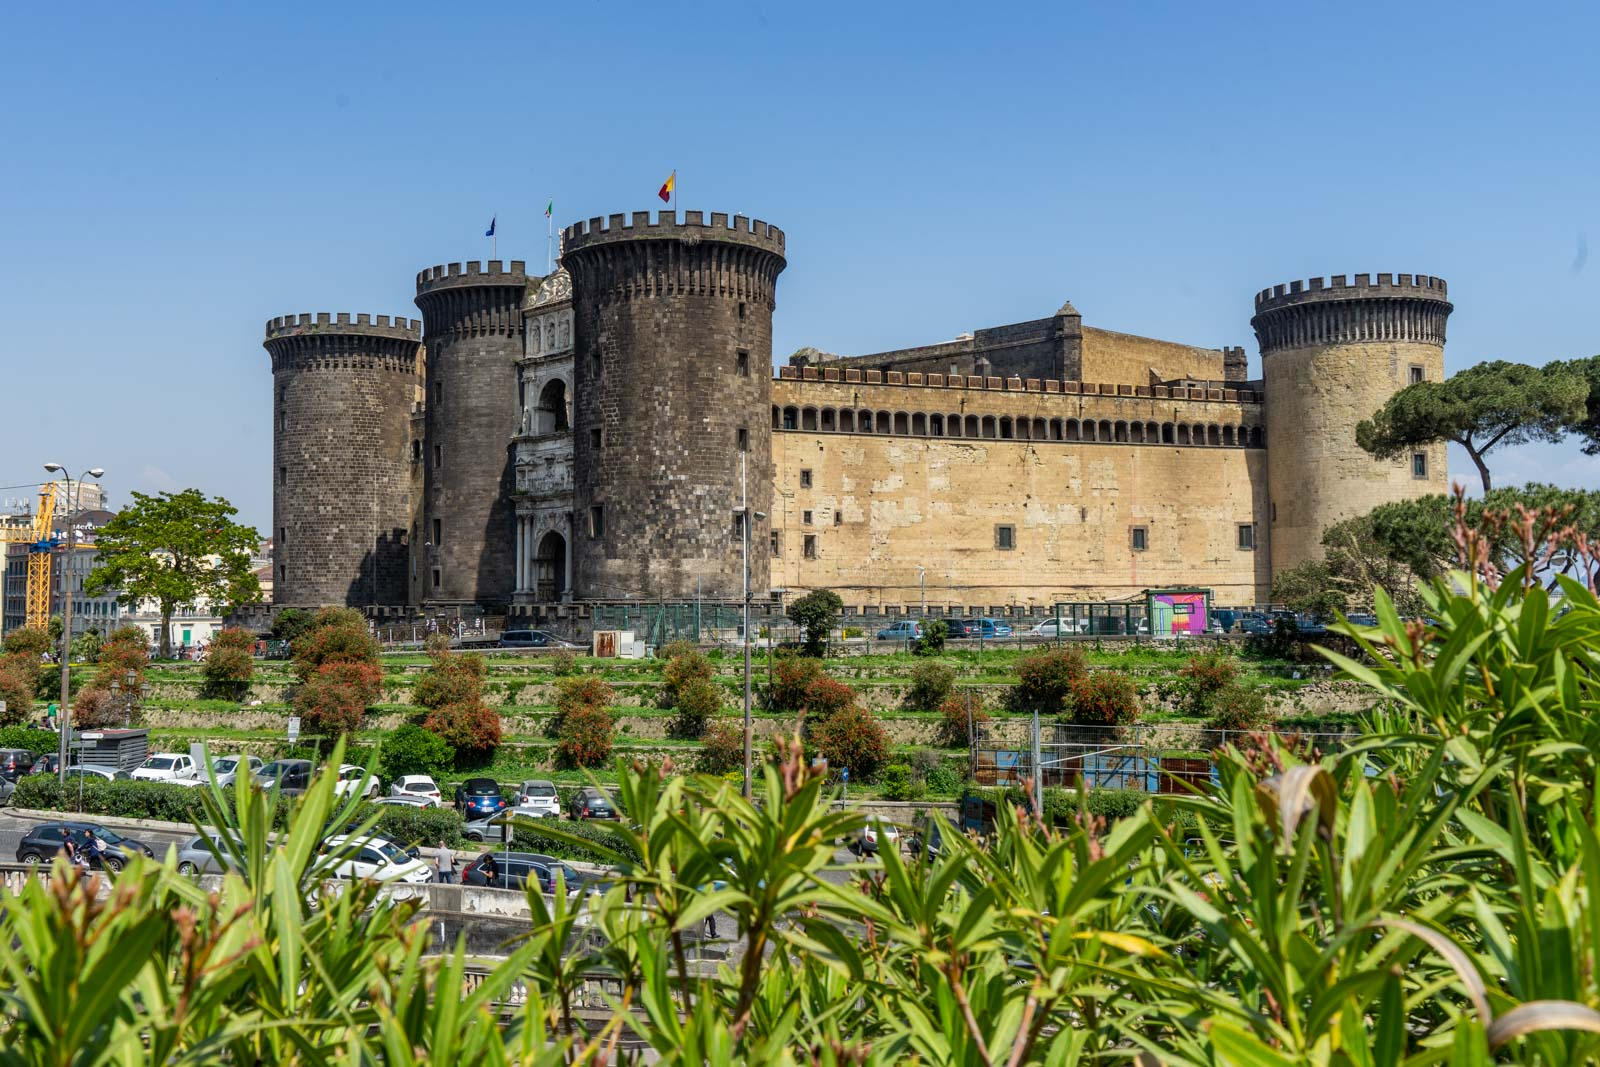 One day in Historic Centre of Naples, Italy